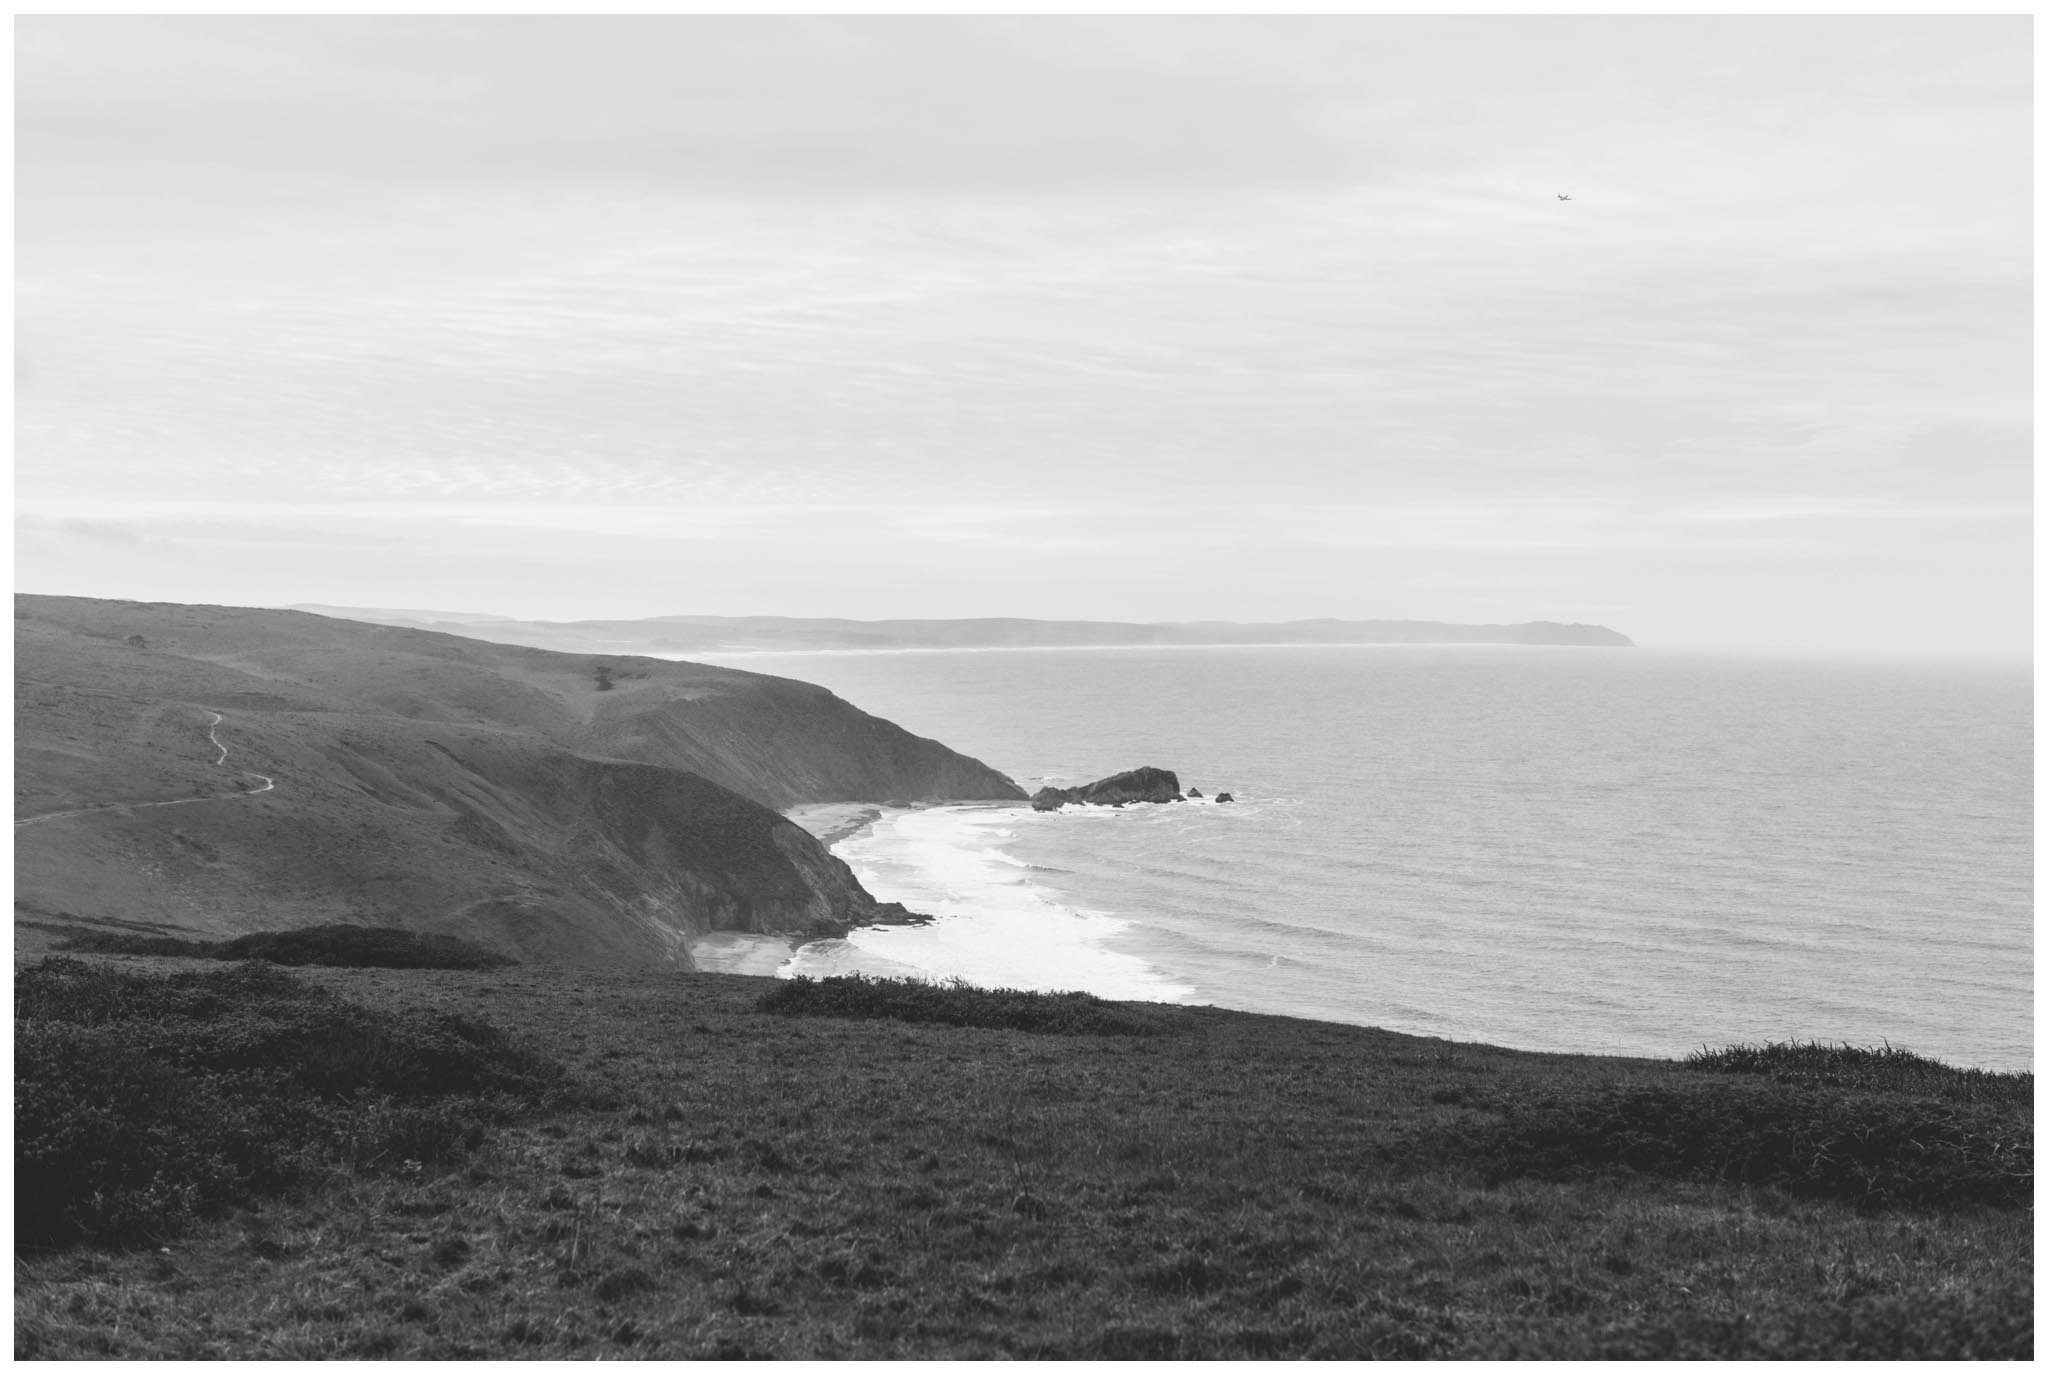 point reyes national seashore, tomales point trailhead